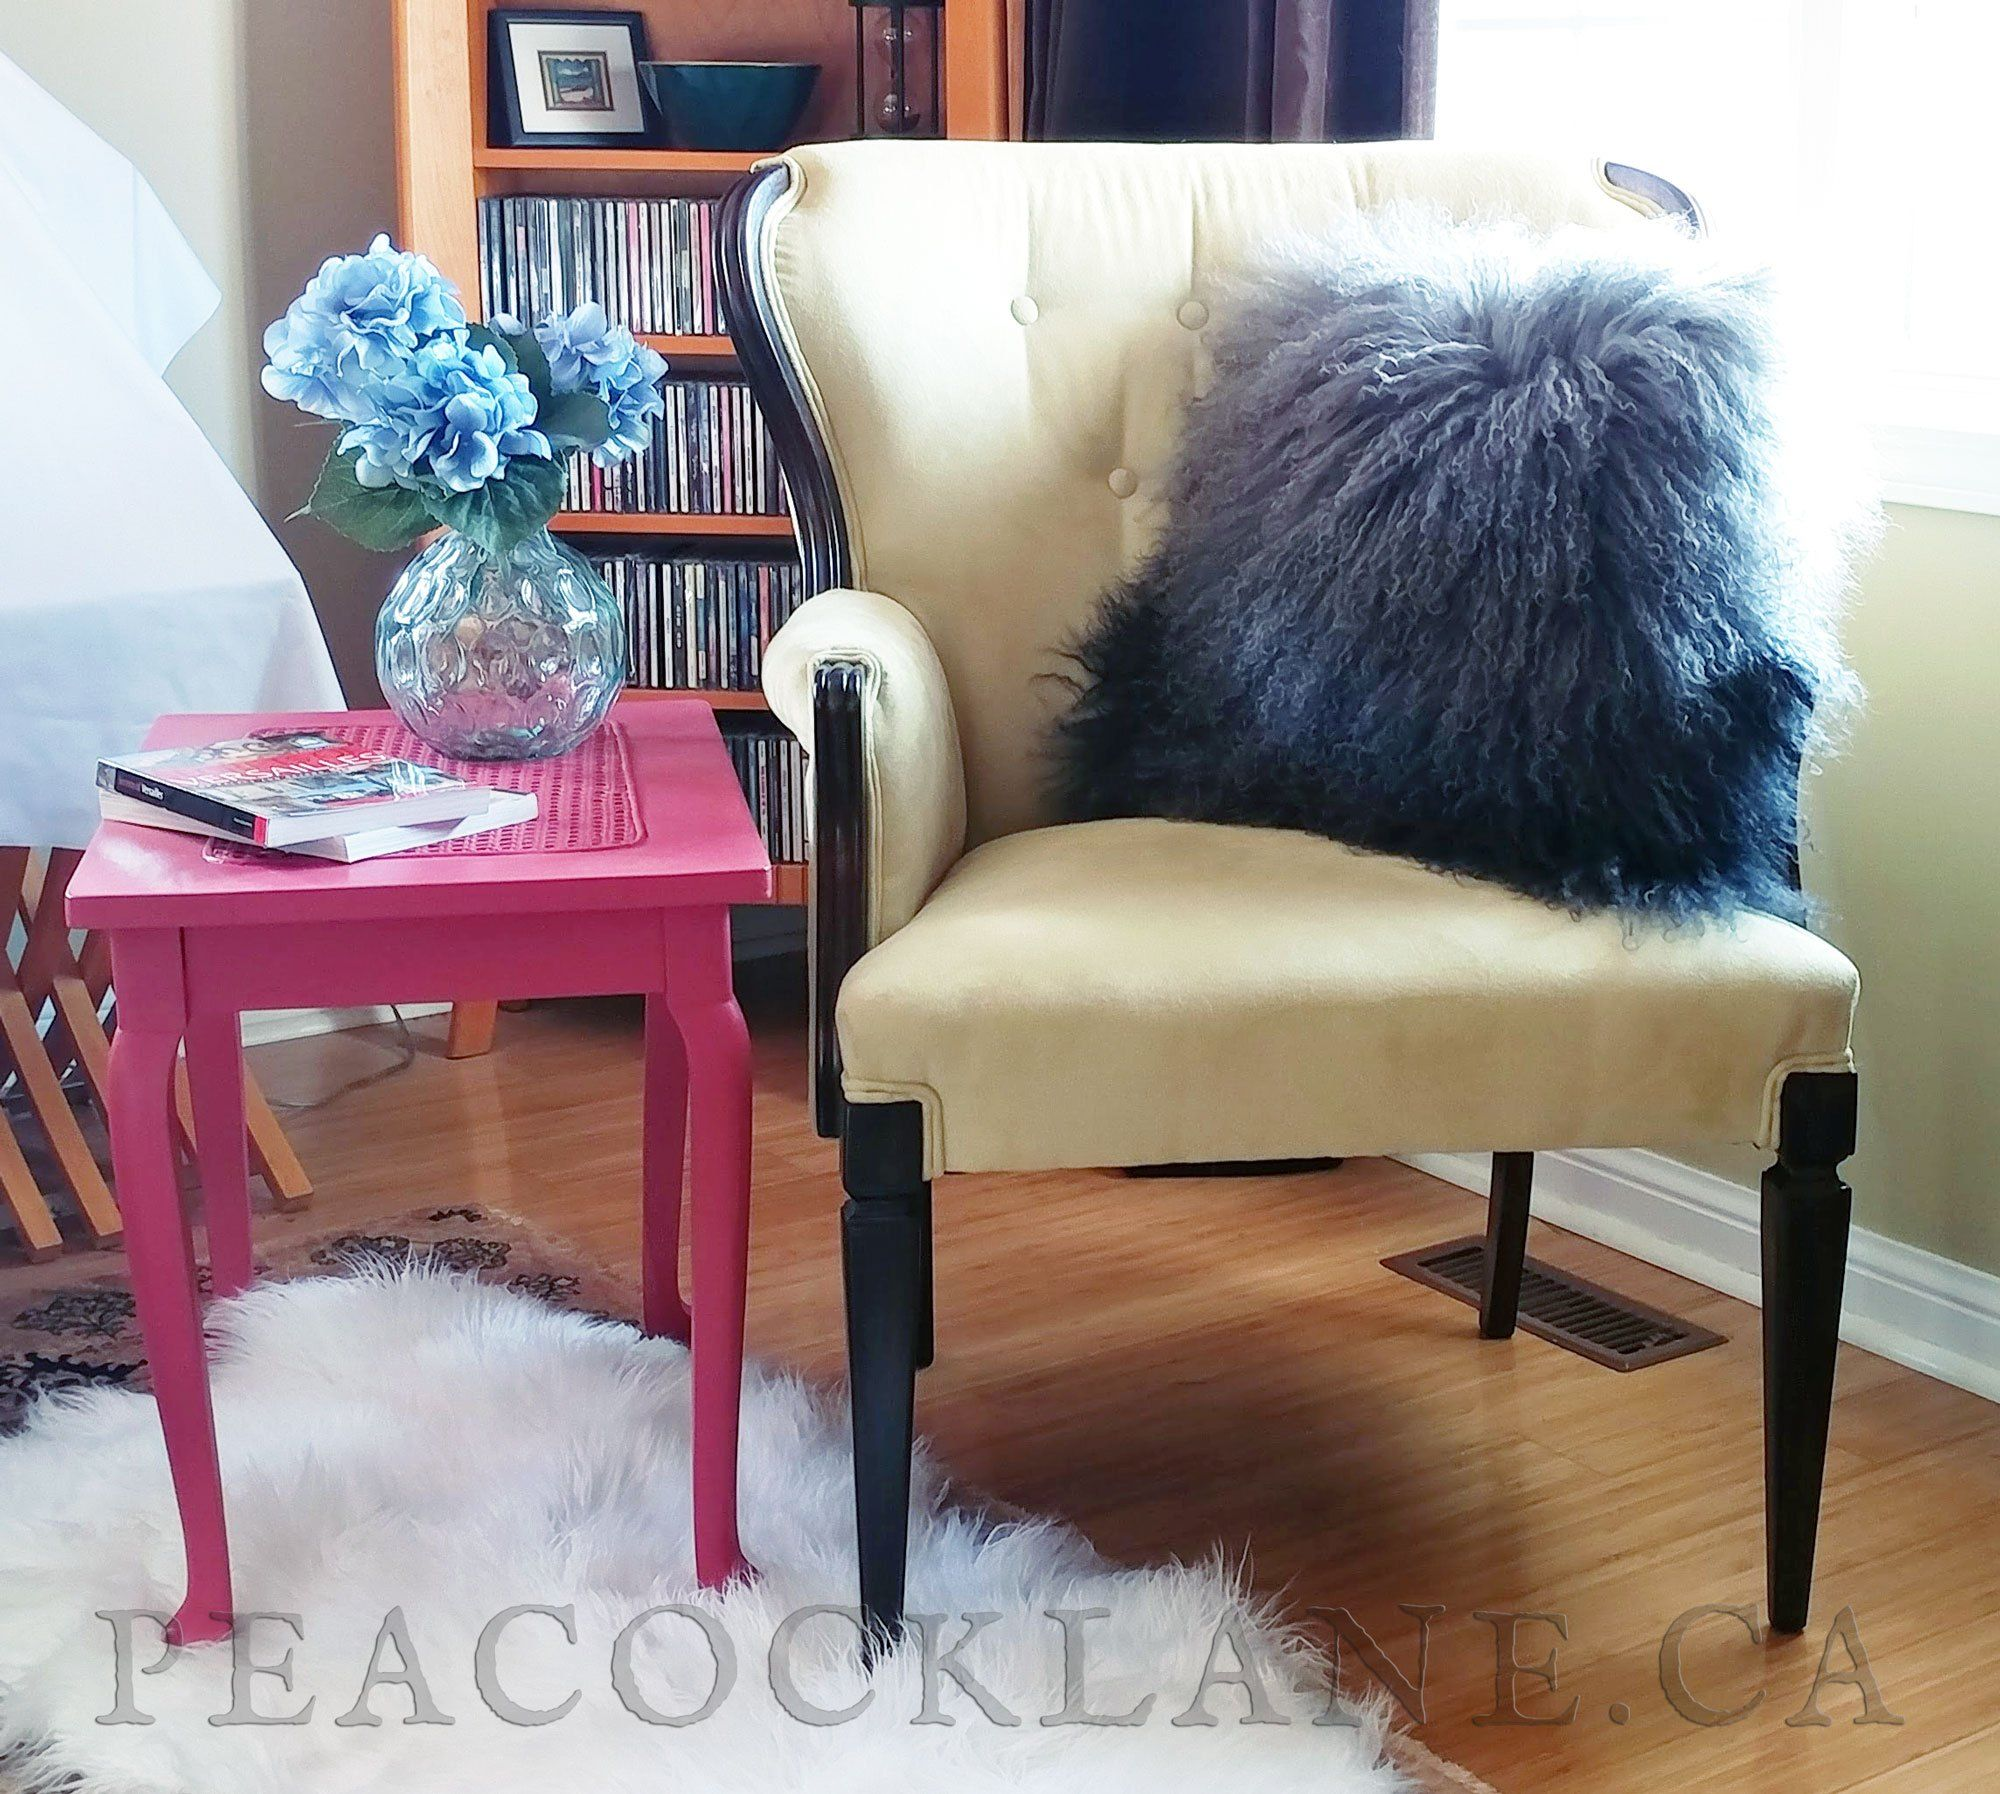 How To Buy And Sell Furniture Like A Pro